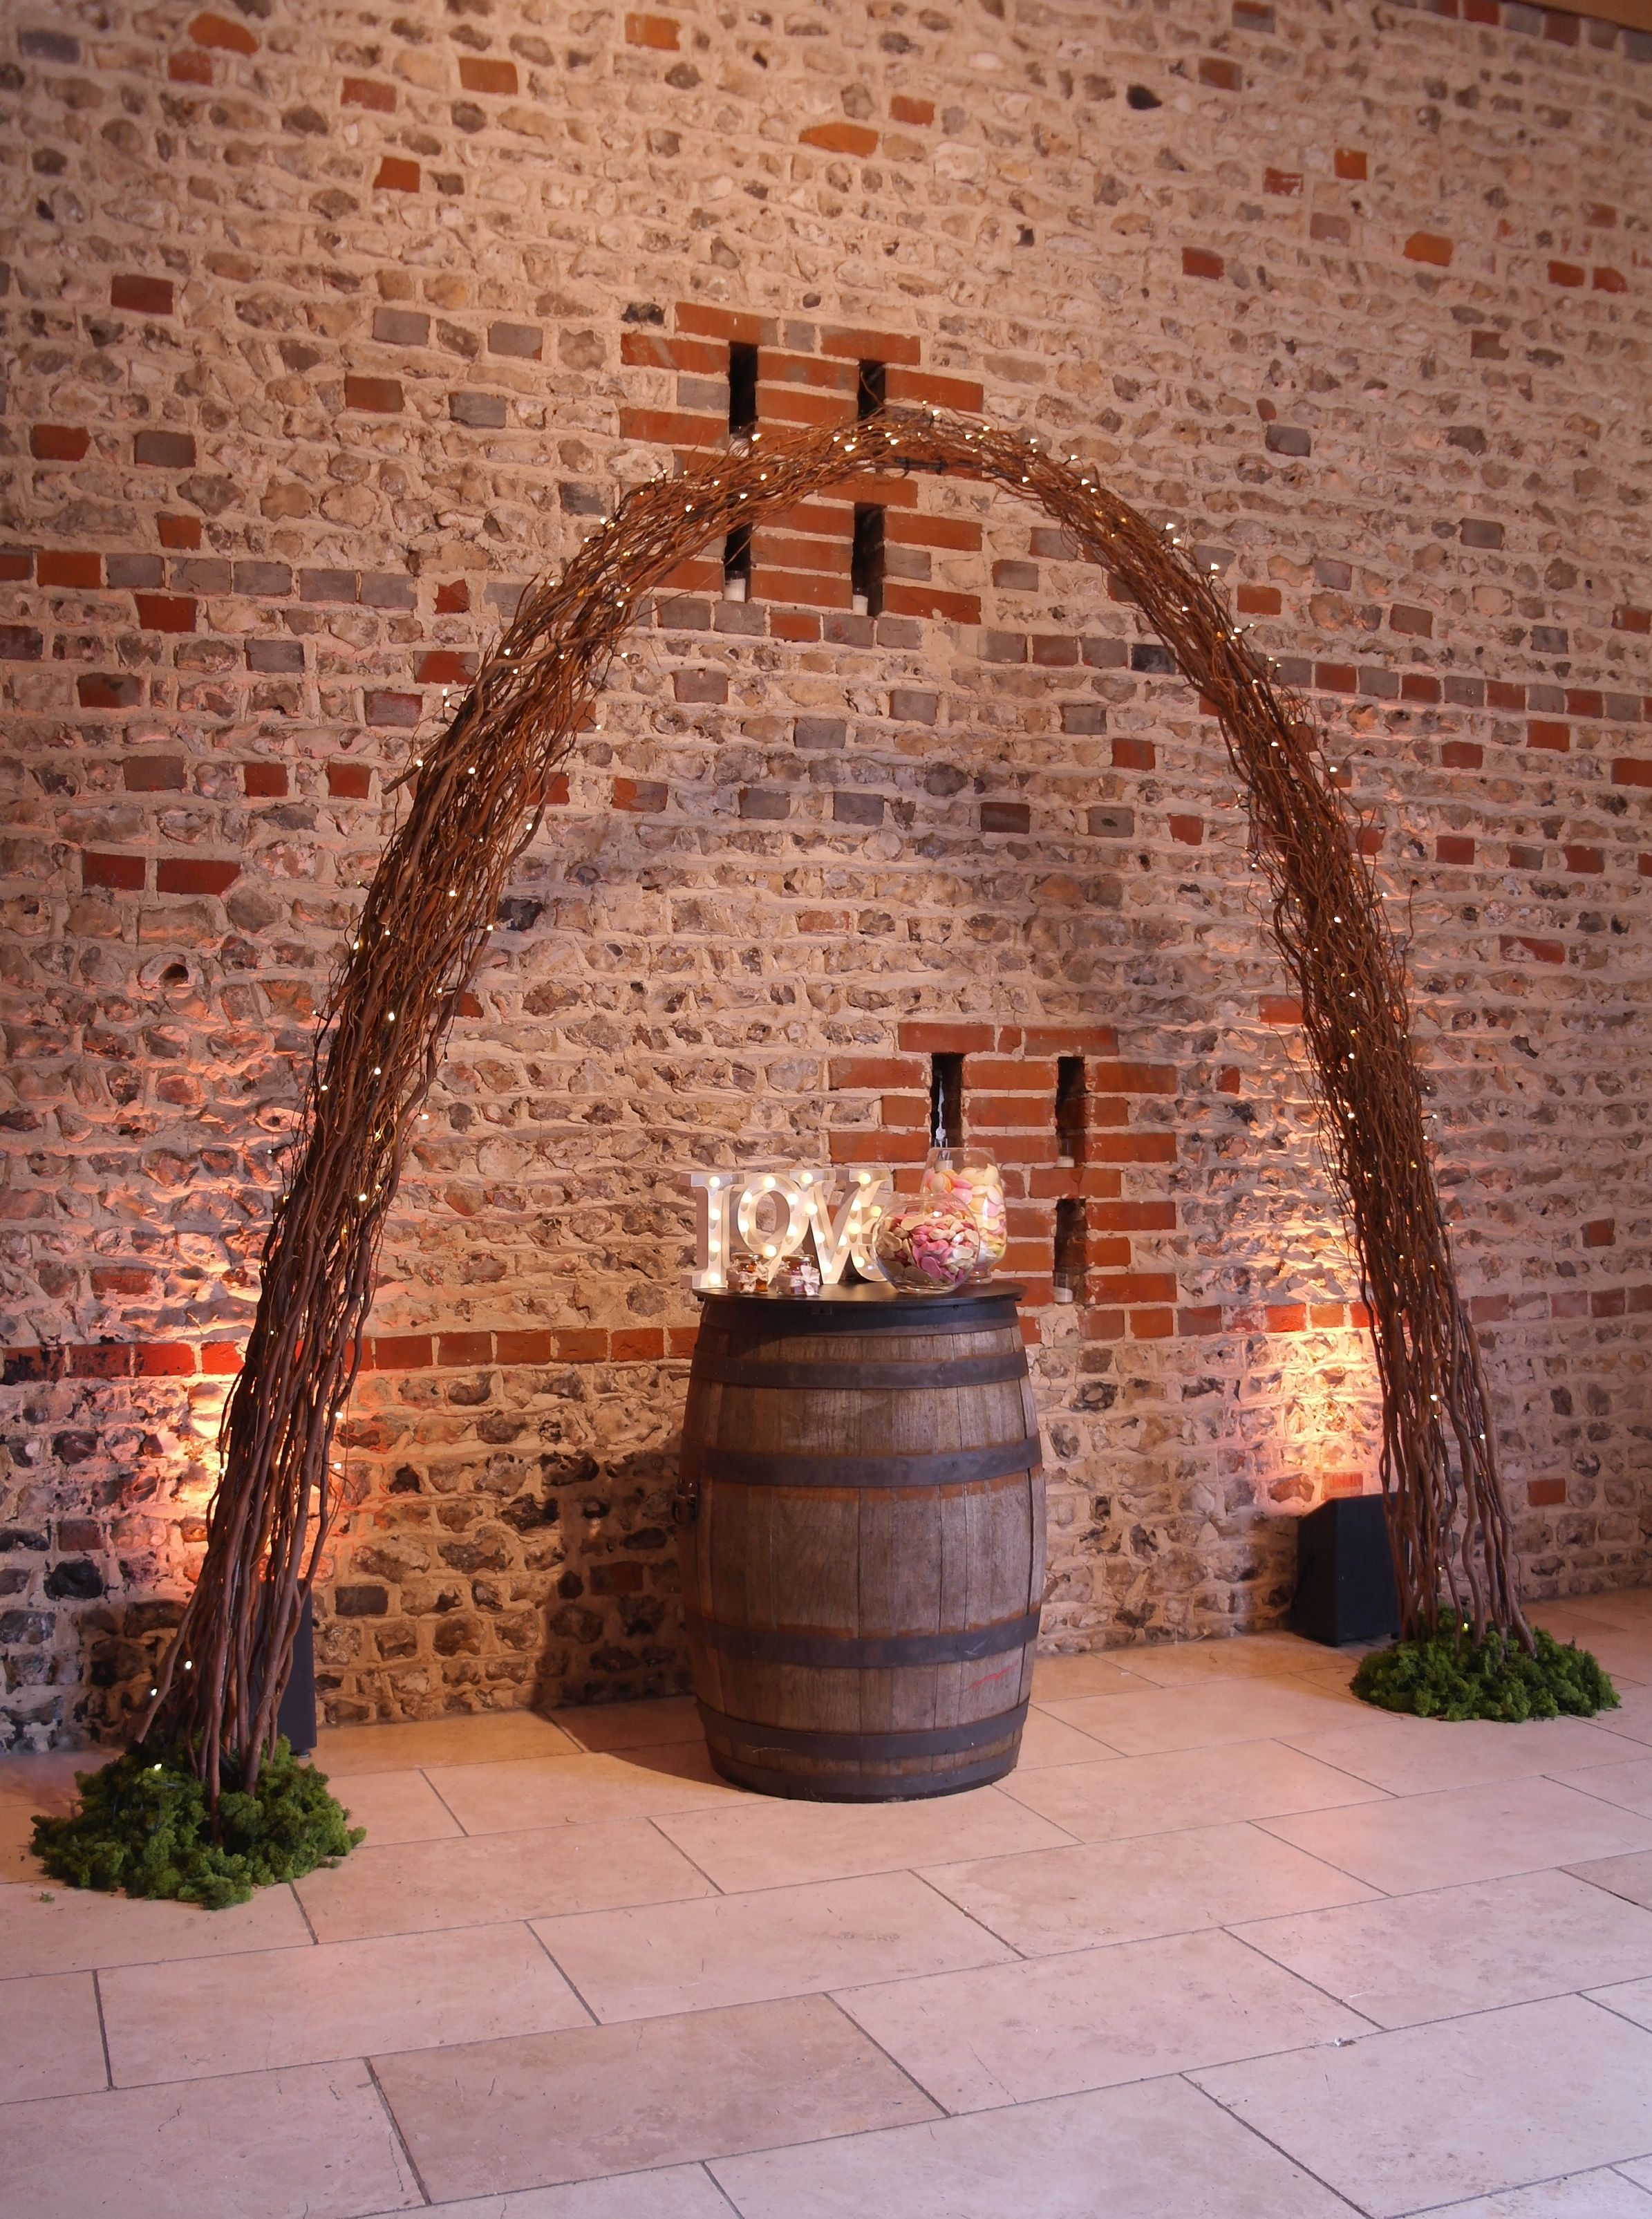 Twisted willow archway with pealights and barrel poseur table for a rustic barn wedding at Upwaltham Barns by www.stressfreehire.com #venuetransformers